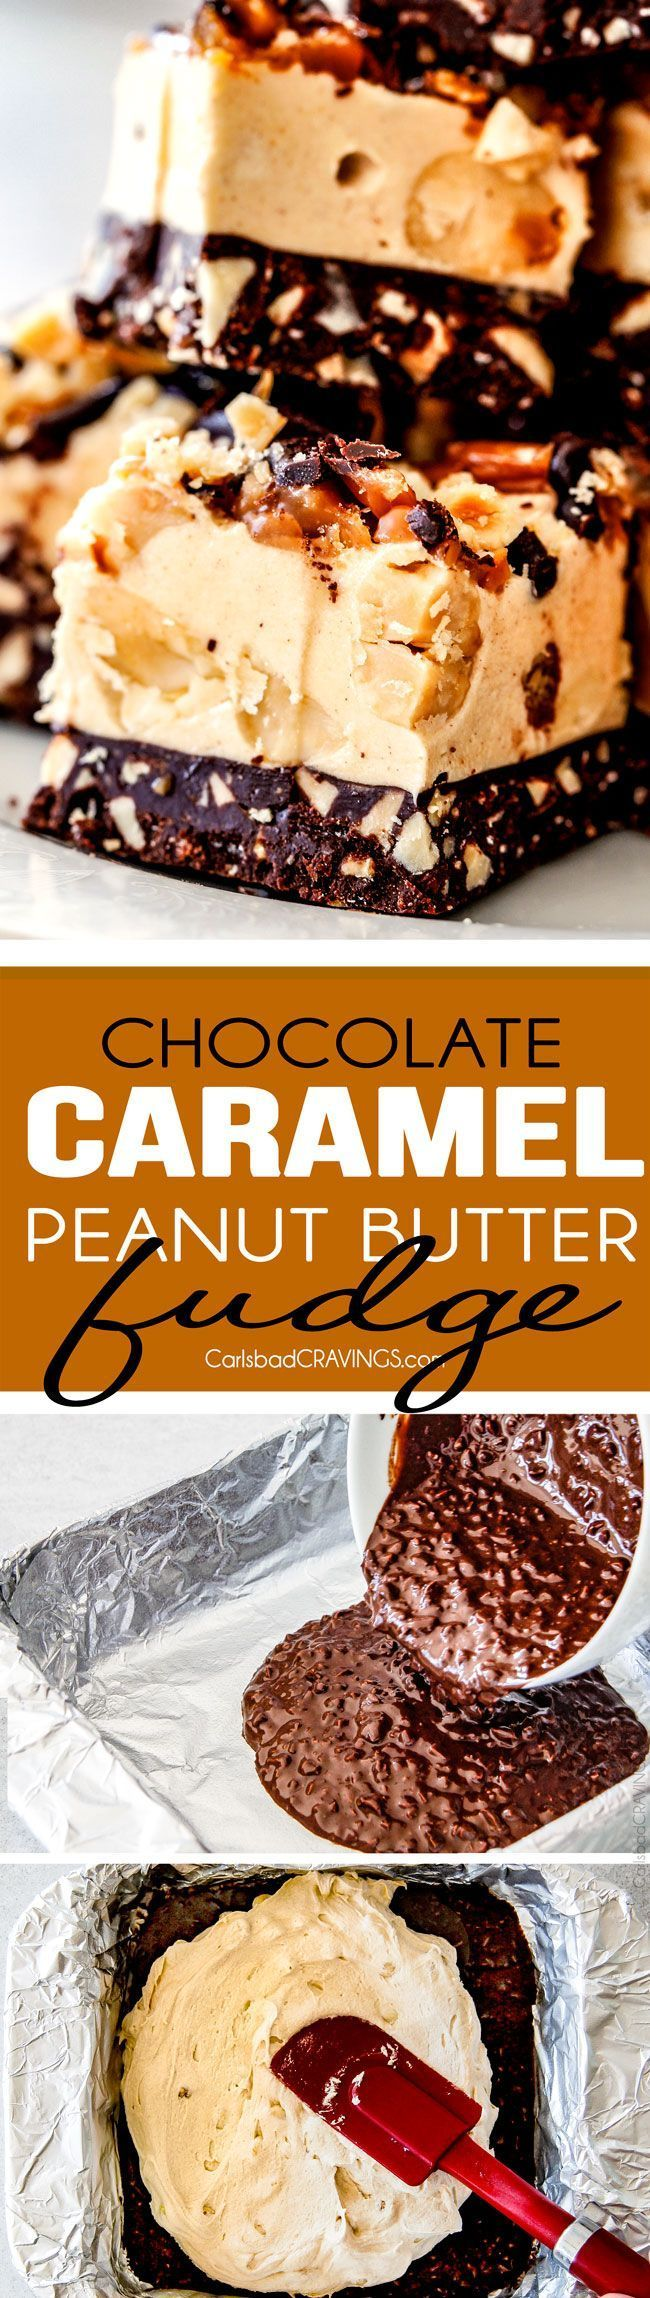 Easy Chocolate Caramel Peanut Butter Fudge with NO boiling and no candy thermometer!